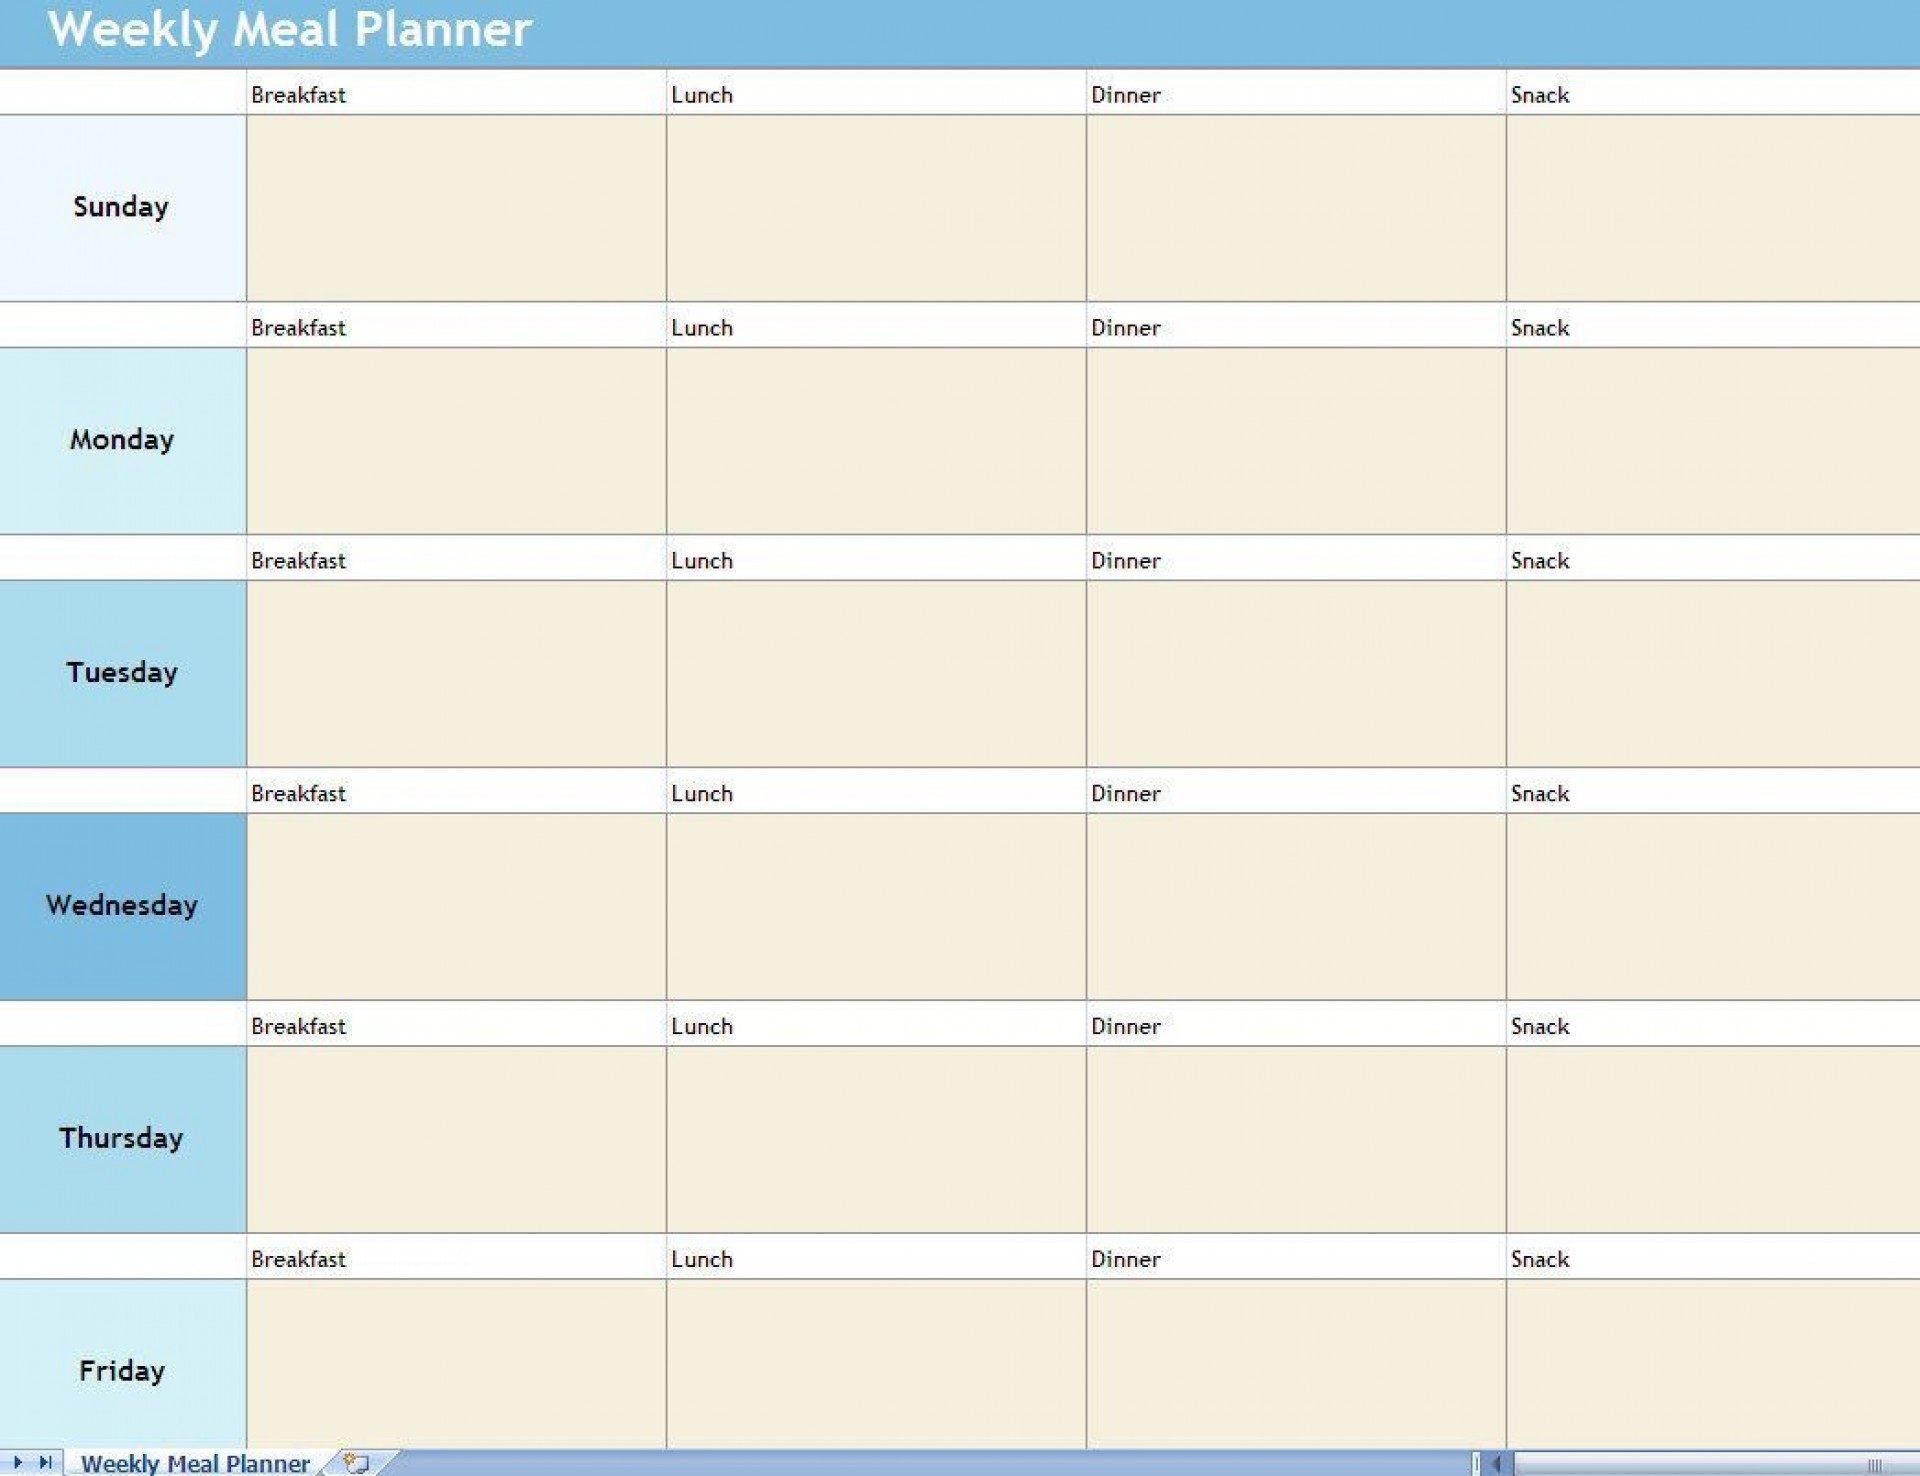 000 Shocking Meal Plan Template Excel Image  Monthly Macro1920